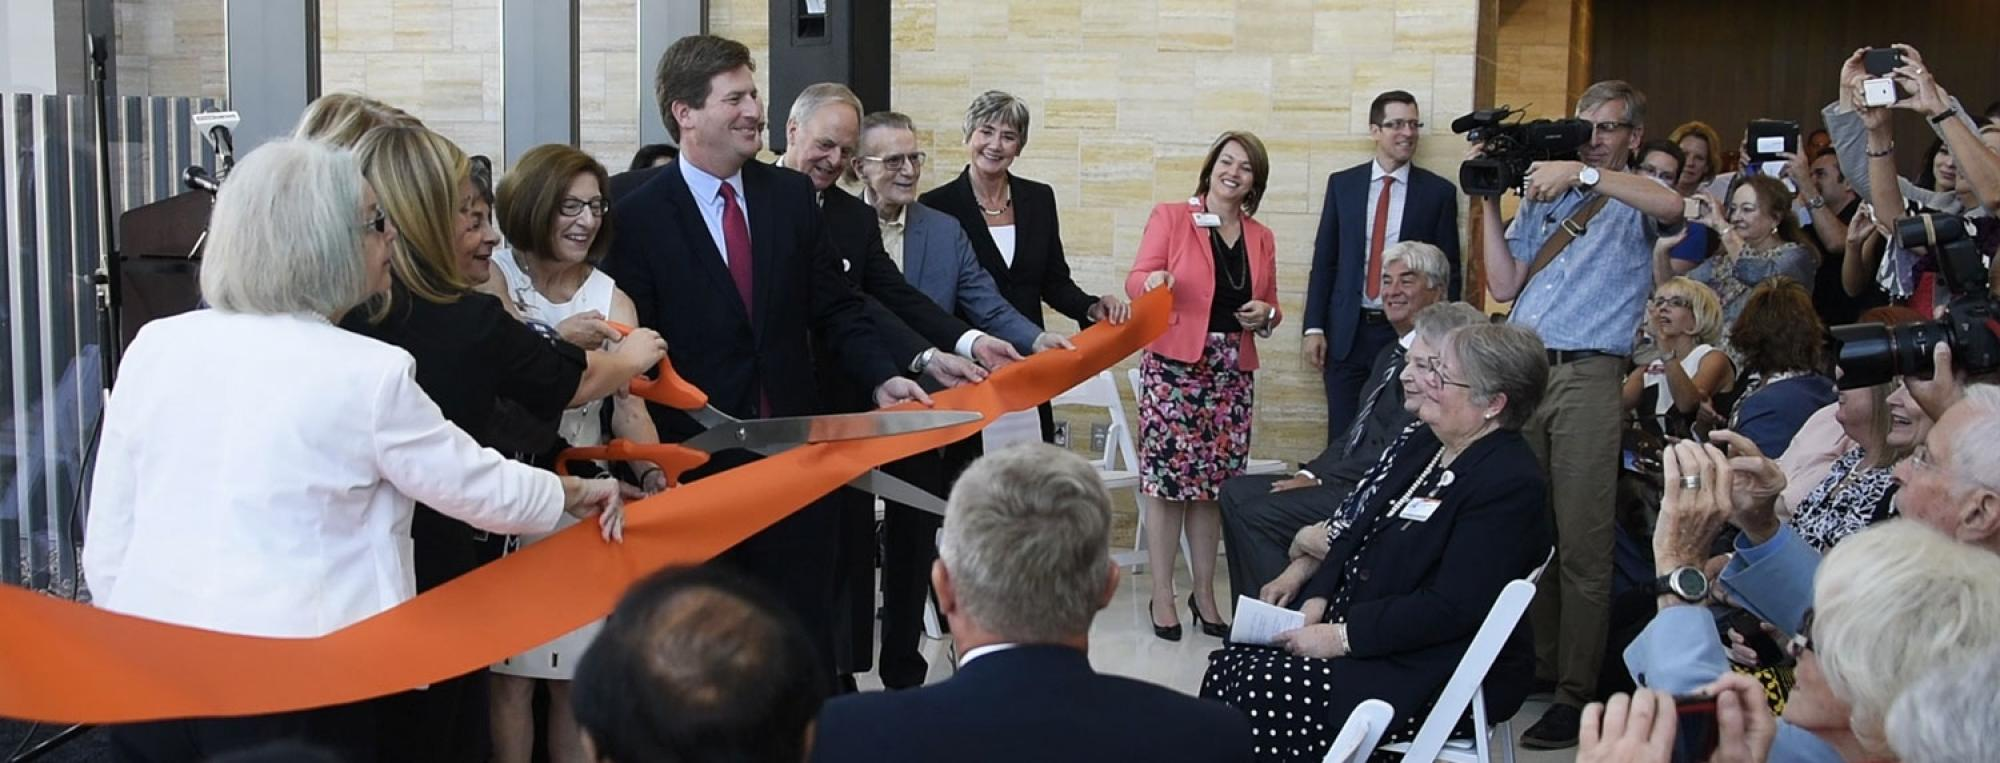 Several University of Arizona and hospital administrators, along with elected officials and other dignitaries, attended the ribbon cutting.